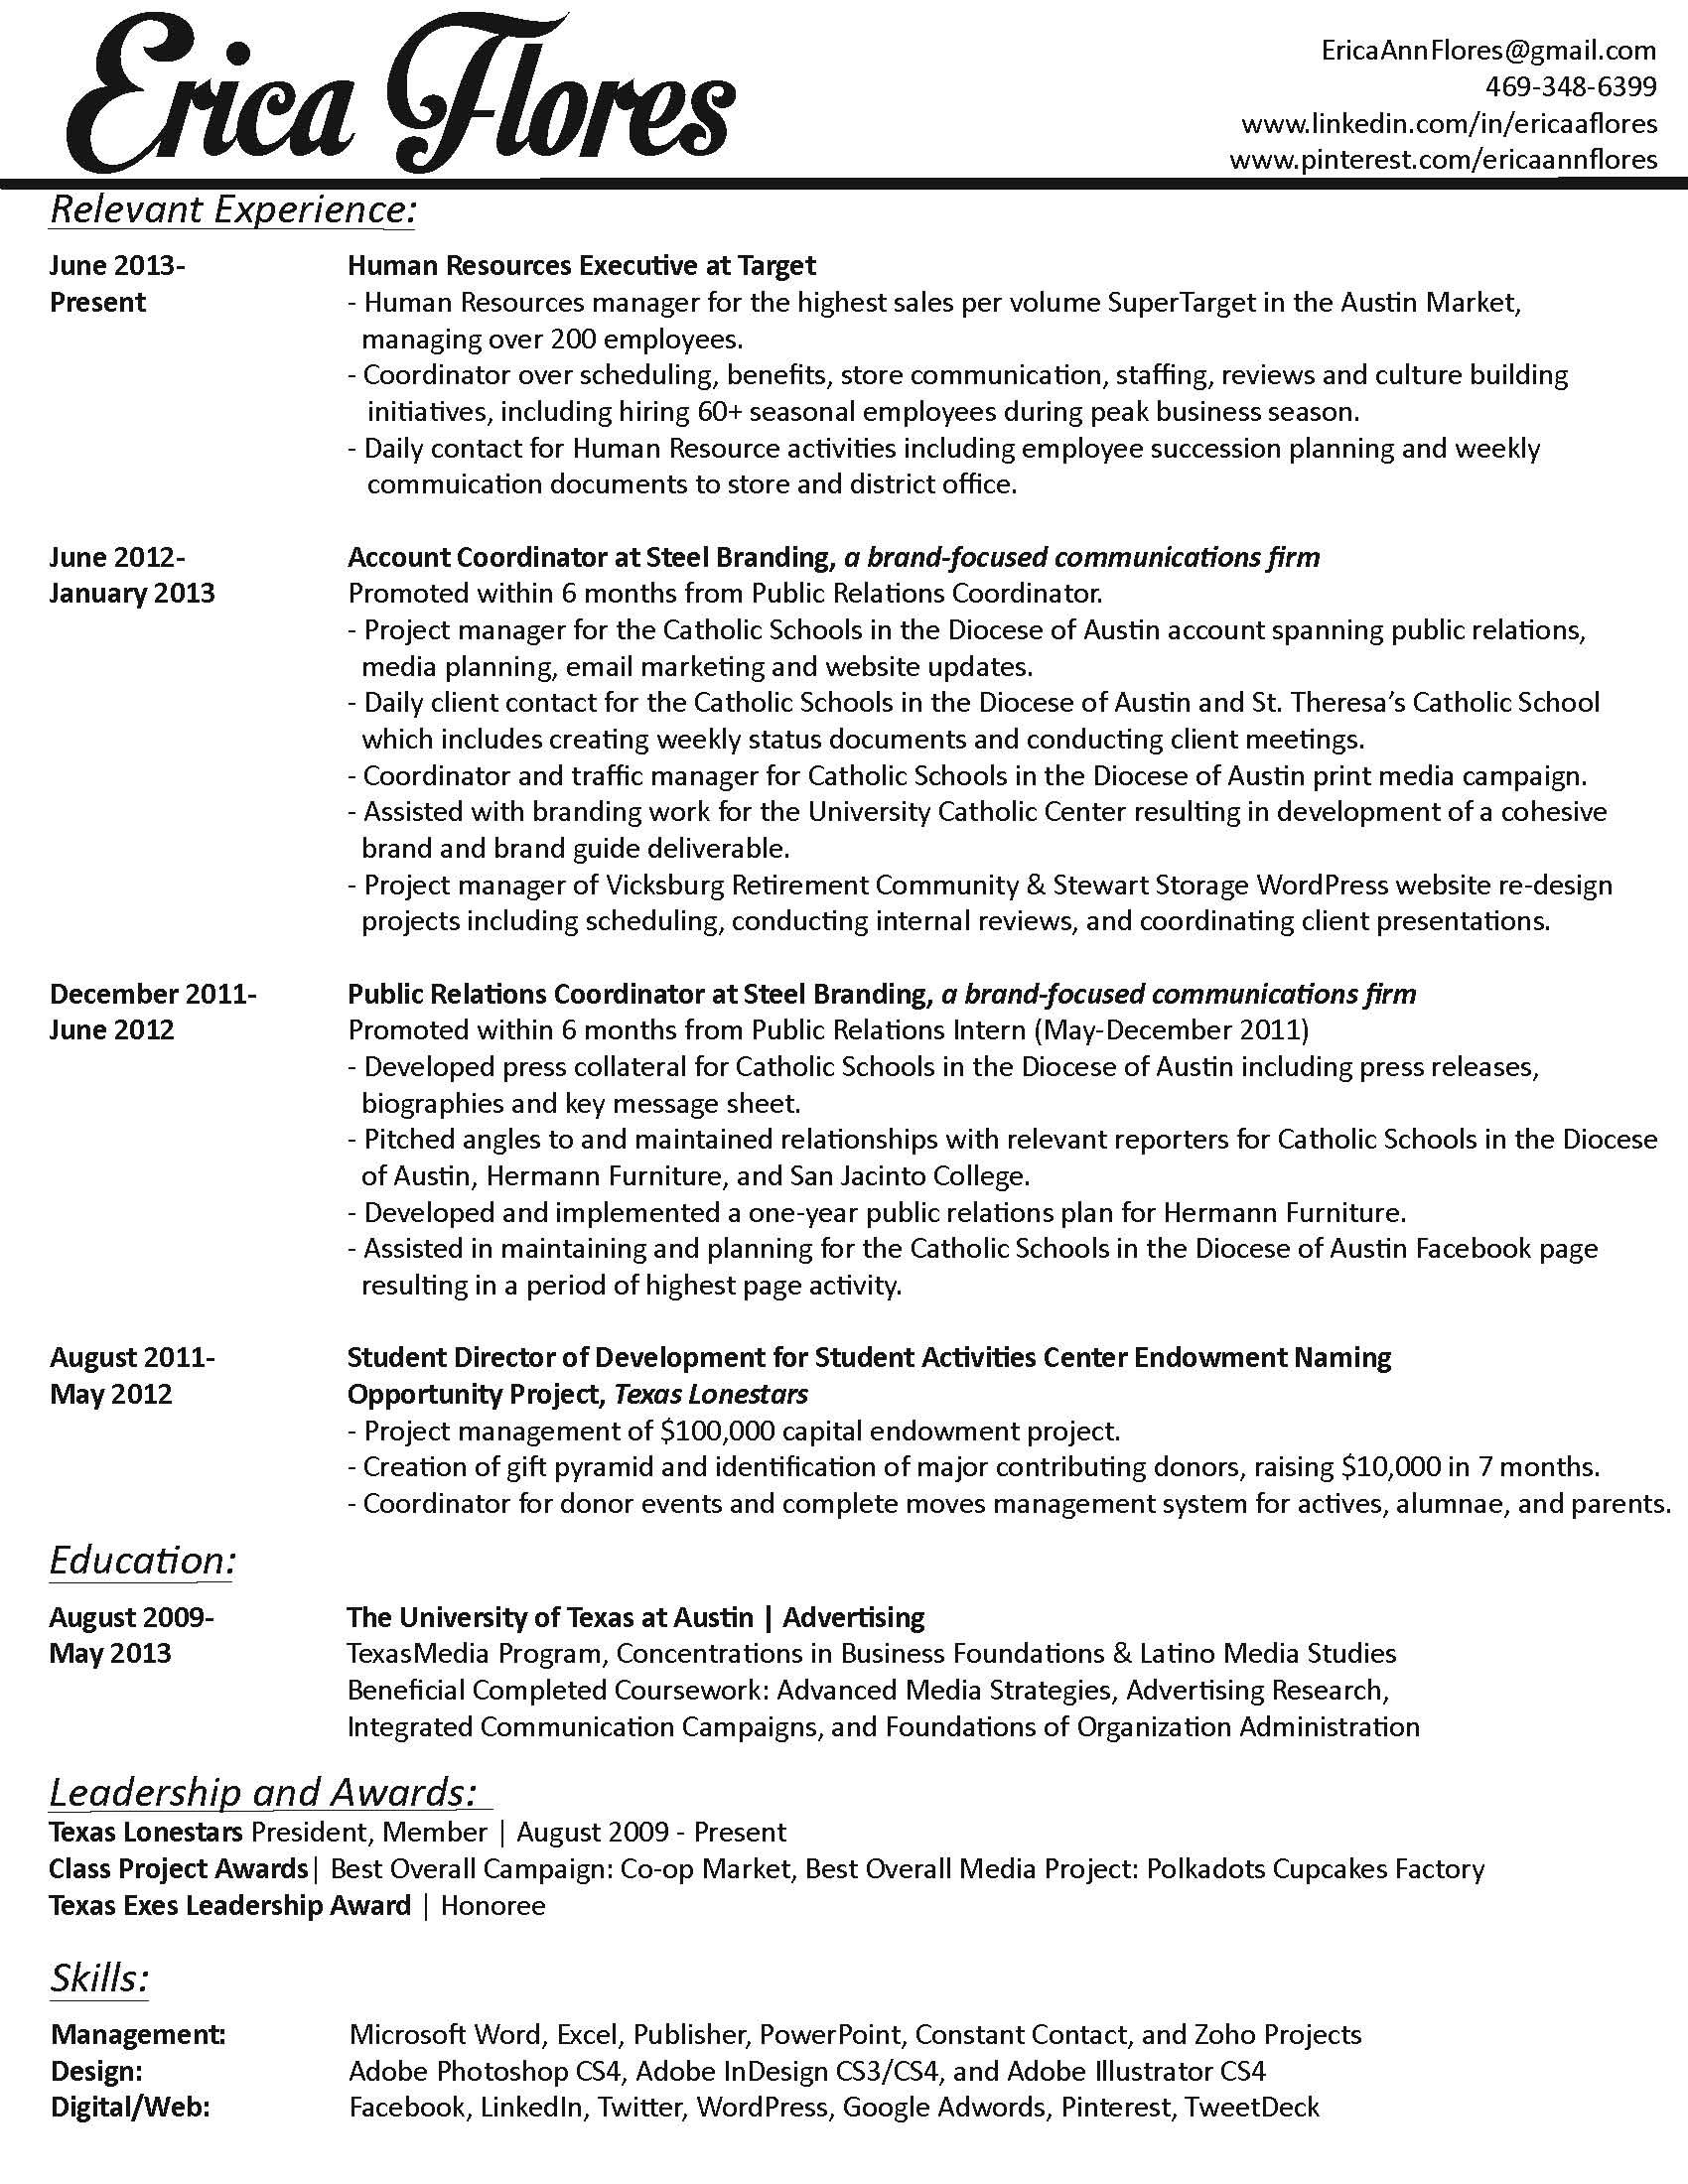 Relevant Experience Resume Relevant Experience And Educational Background#humanresources